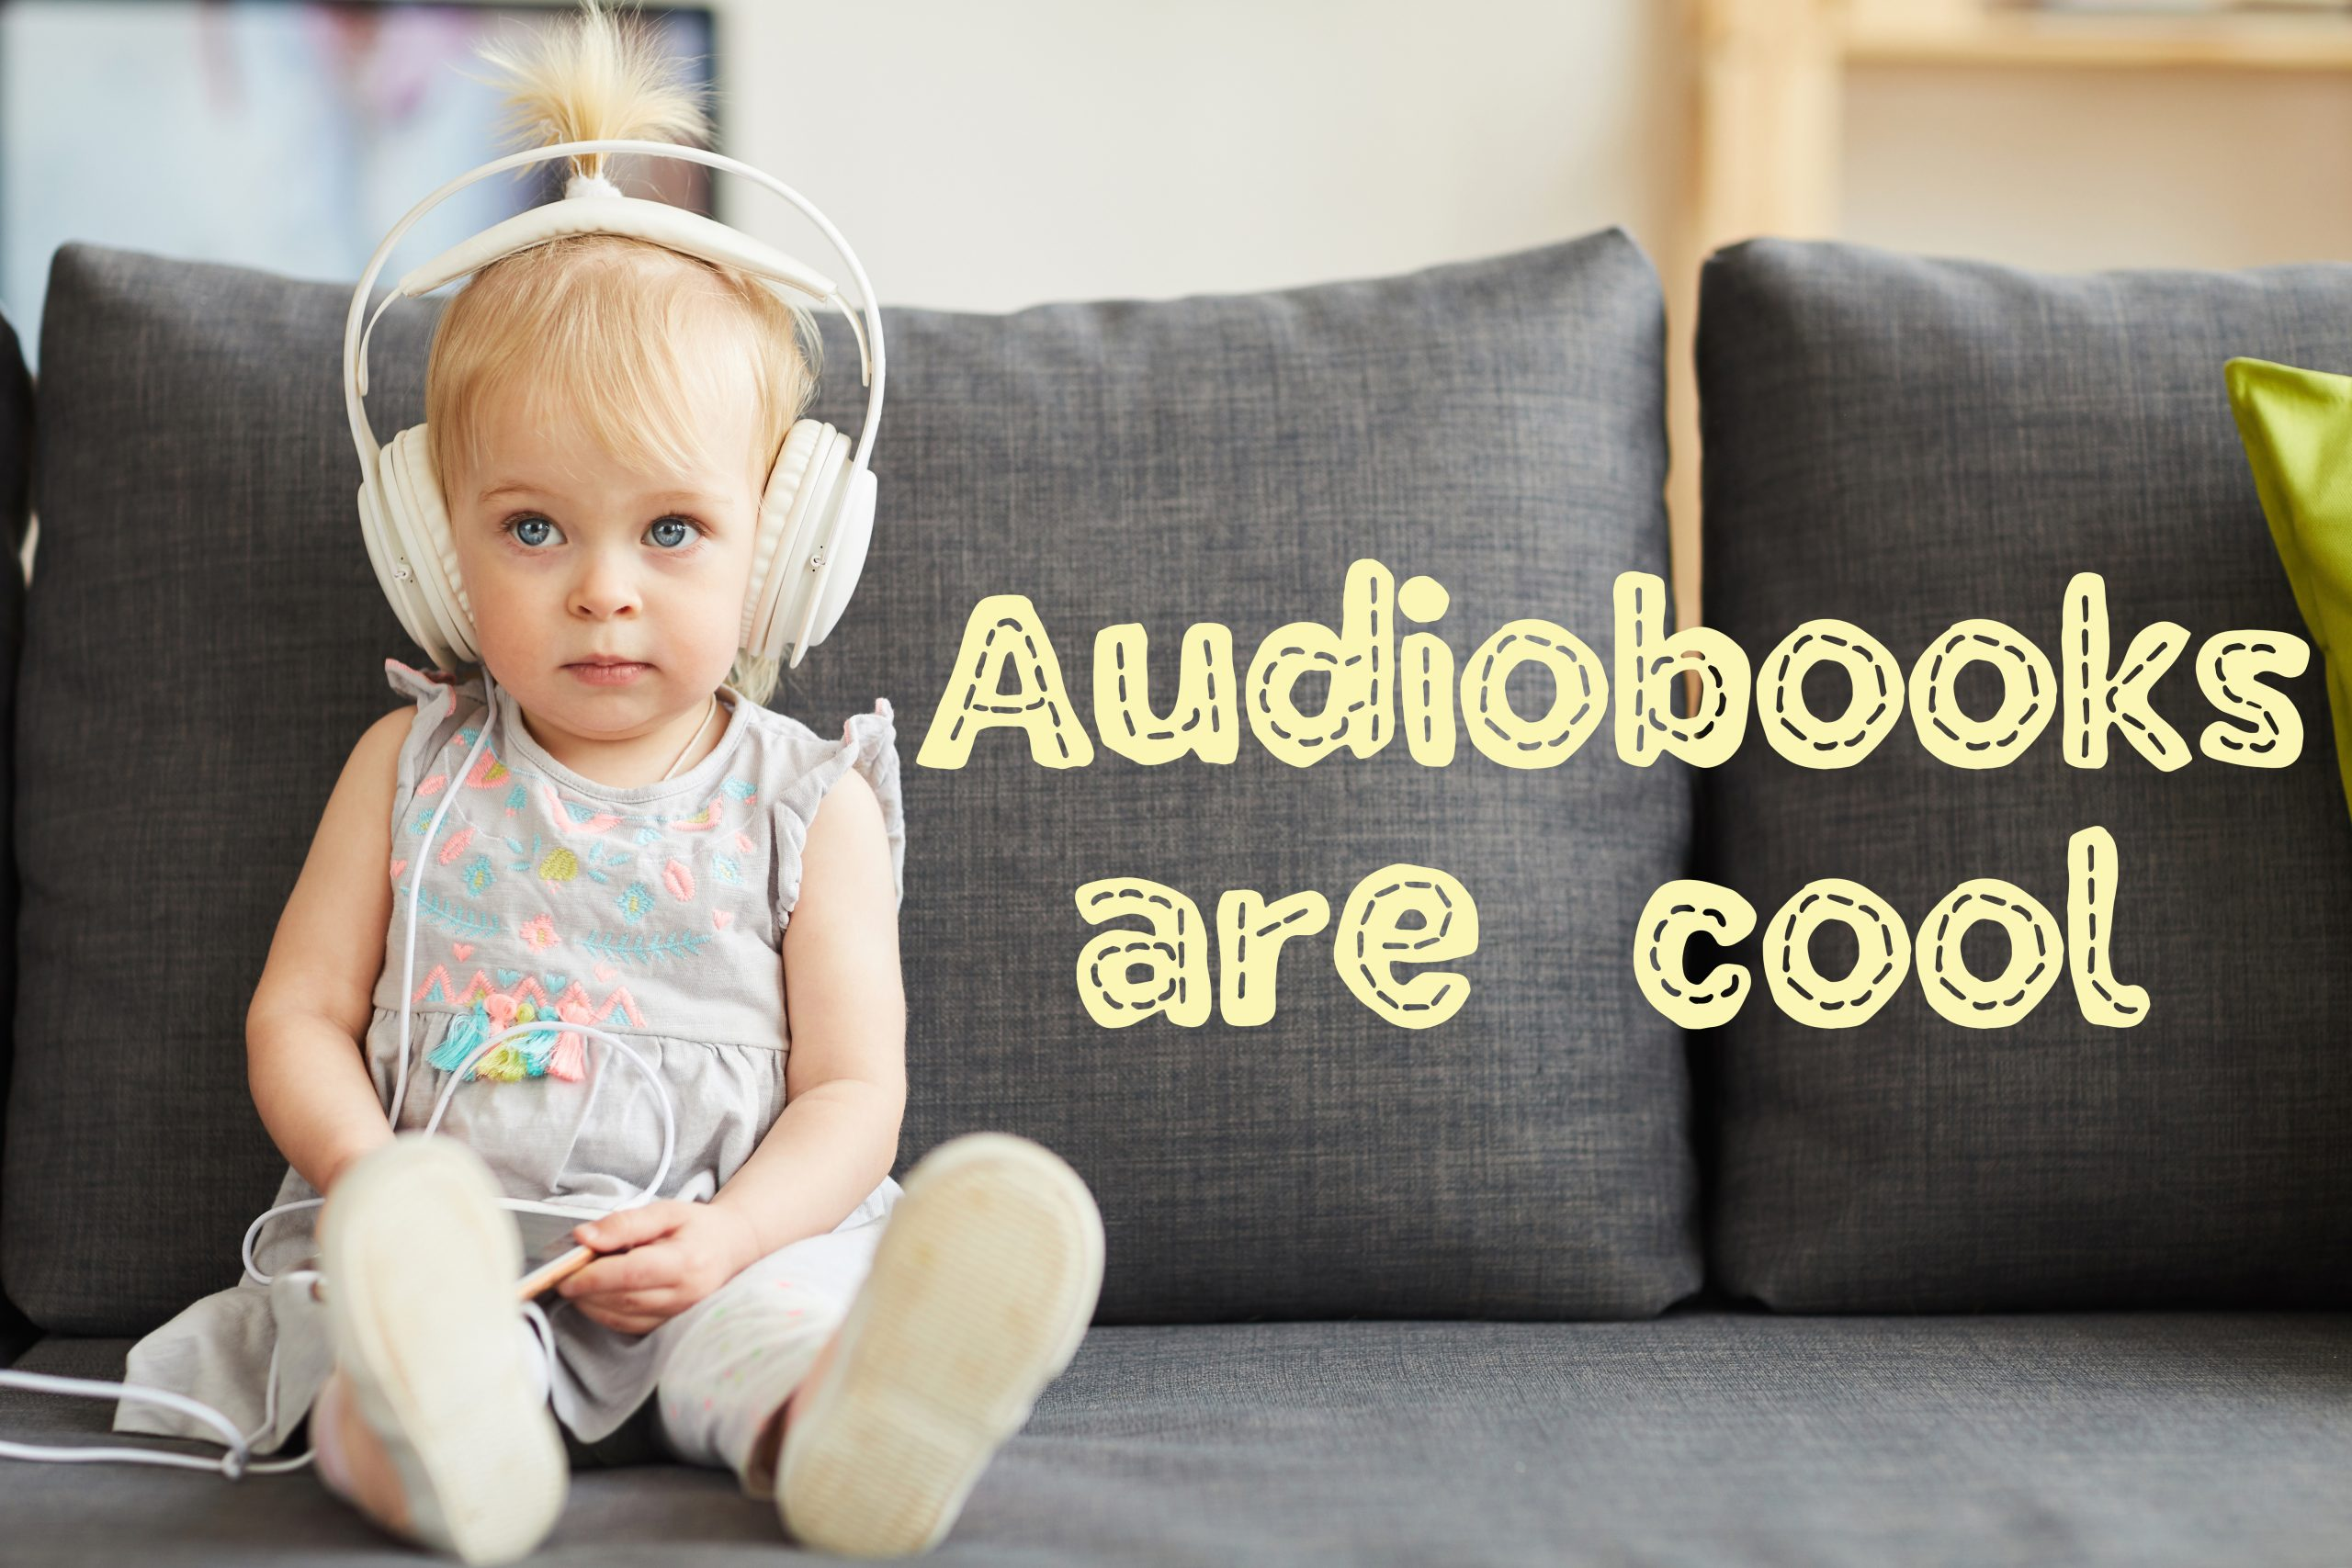 Serious little girl with blue eyes wearing gray dress sitting on sofa in living room and using smartphone to listen to audiobook in headphones. with text that says audiobooks are cool